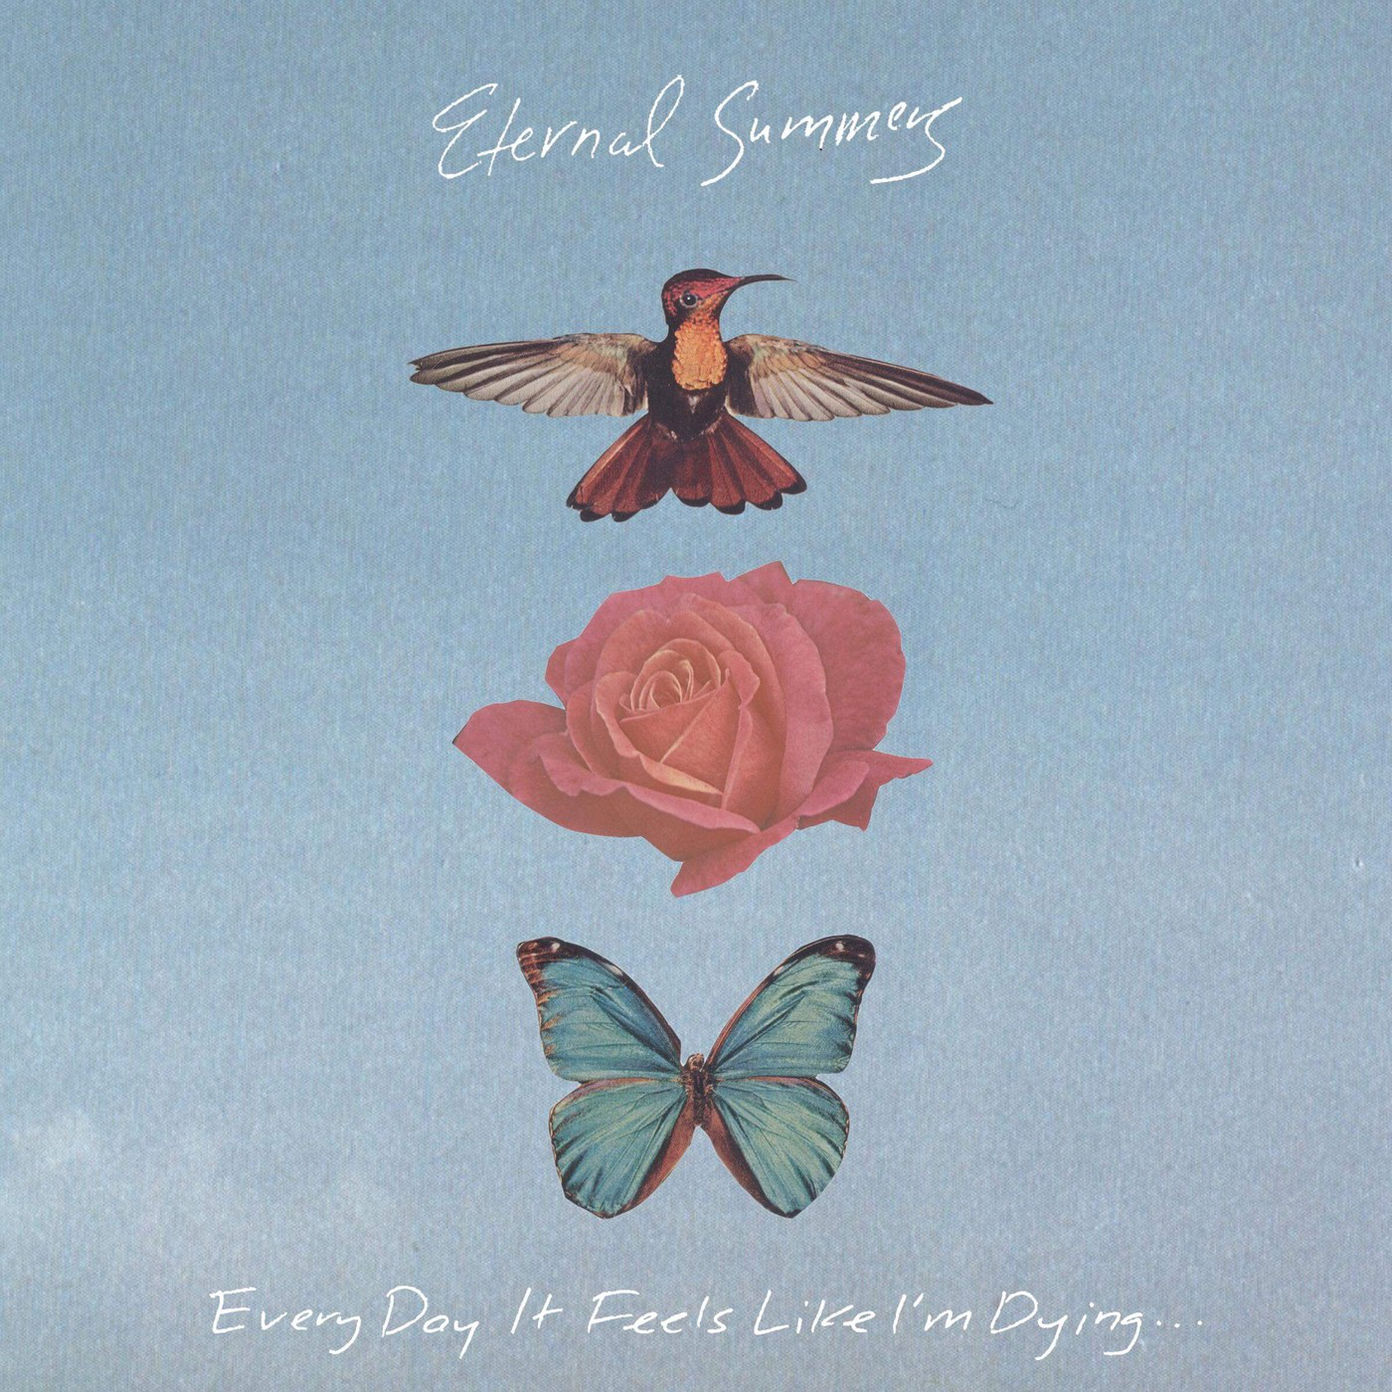 Eternal Summers' Every Day It Feels Like I'm Dying